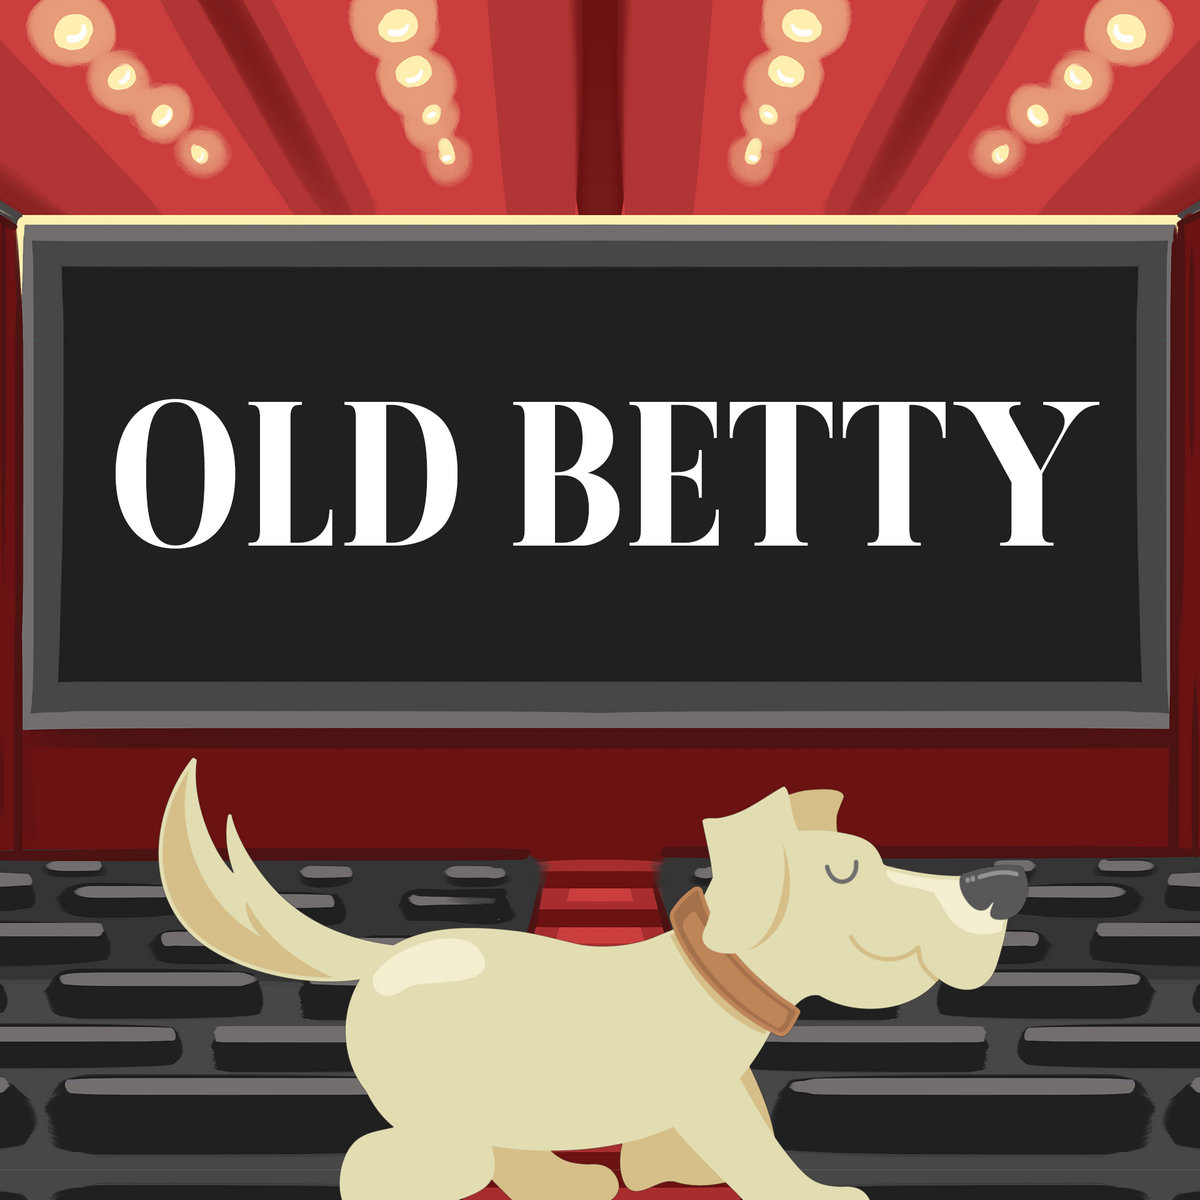 Old Betty by Dan Brodie